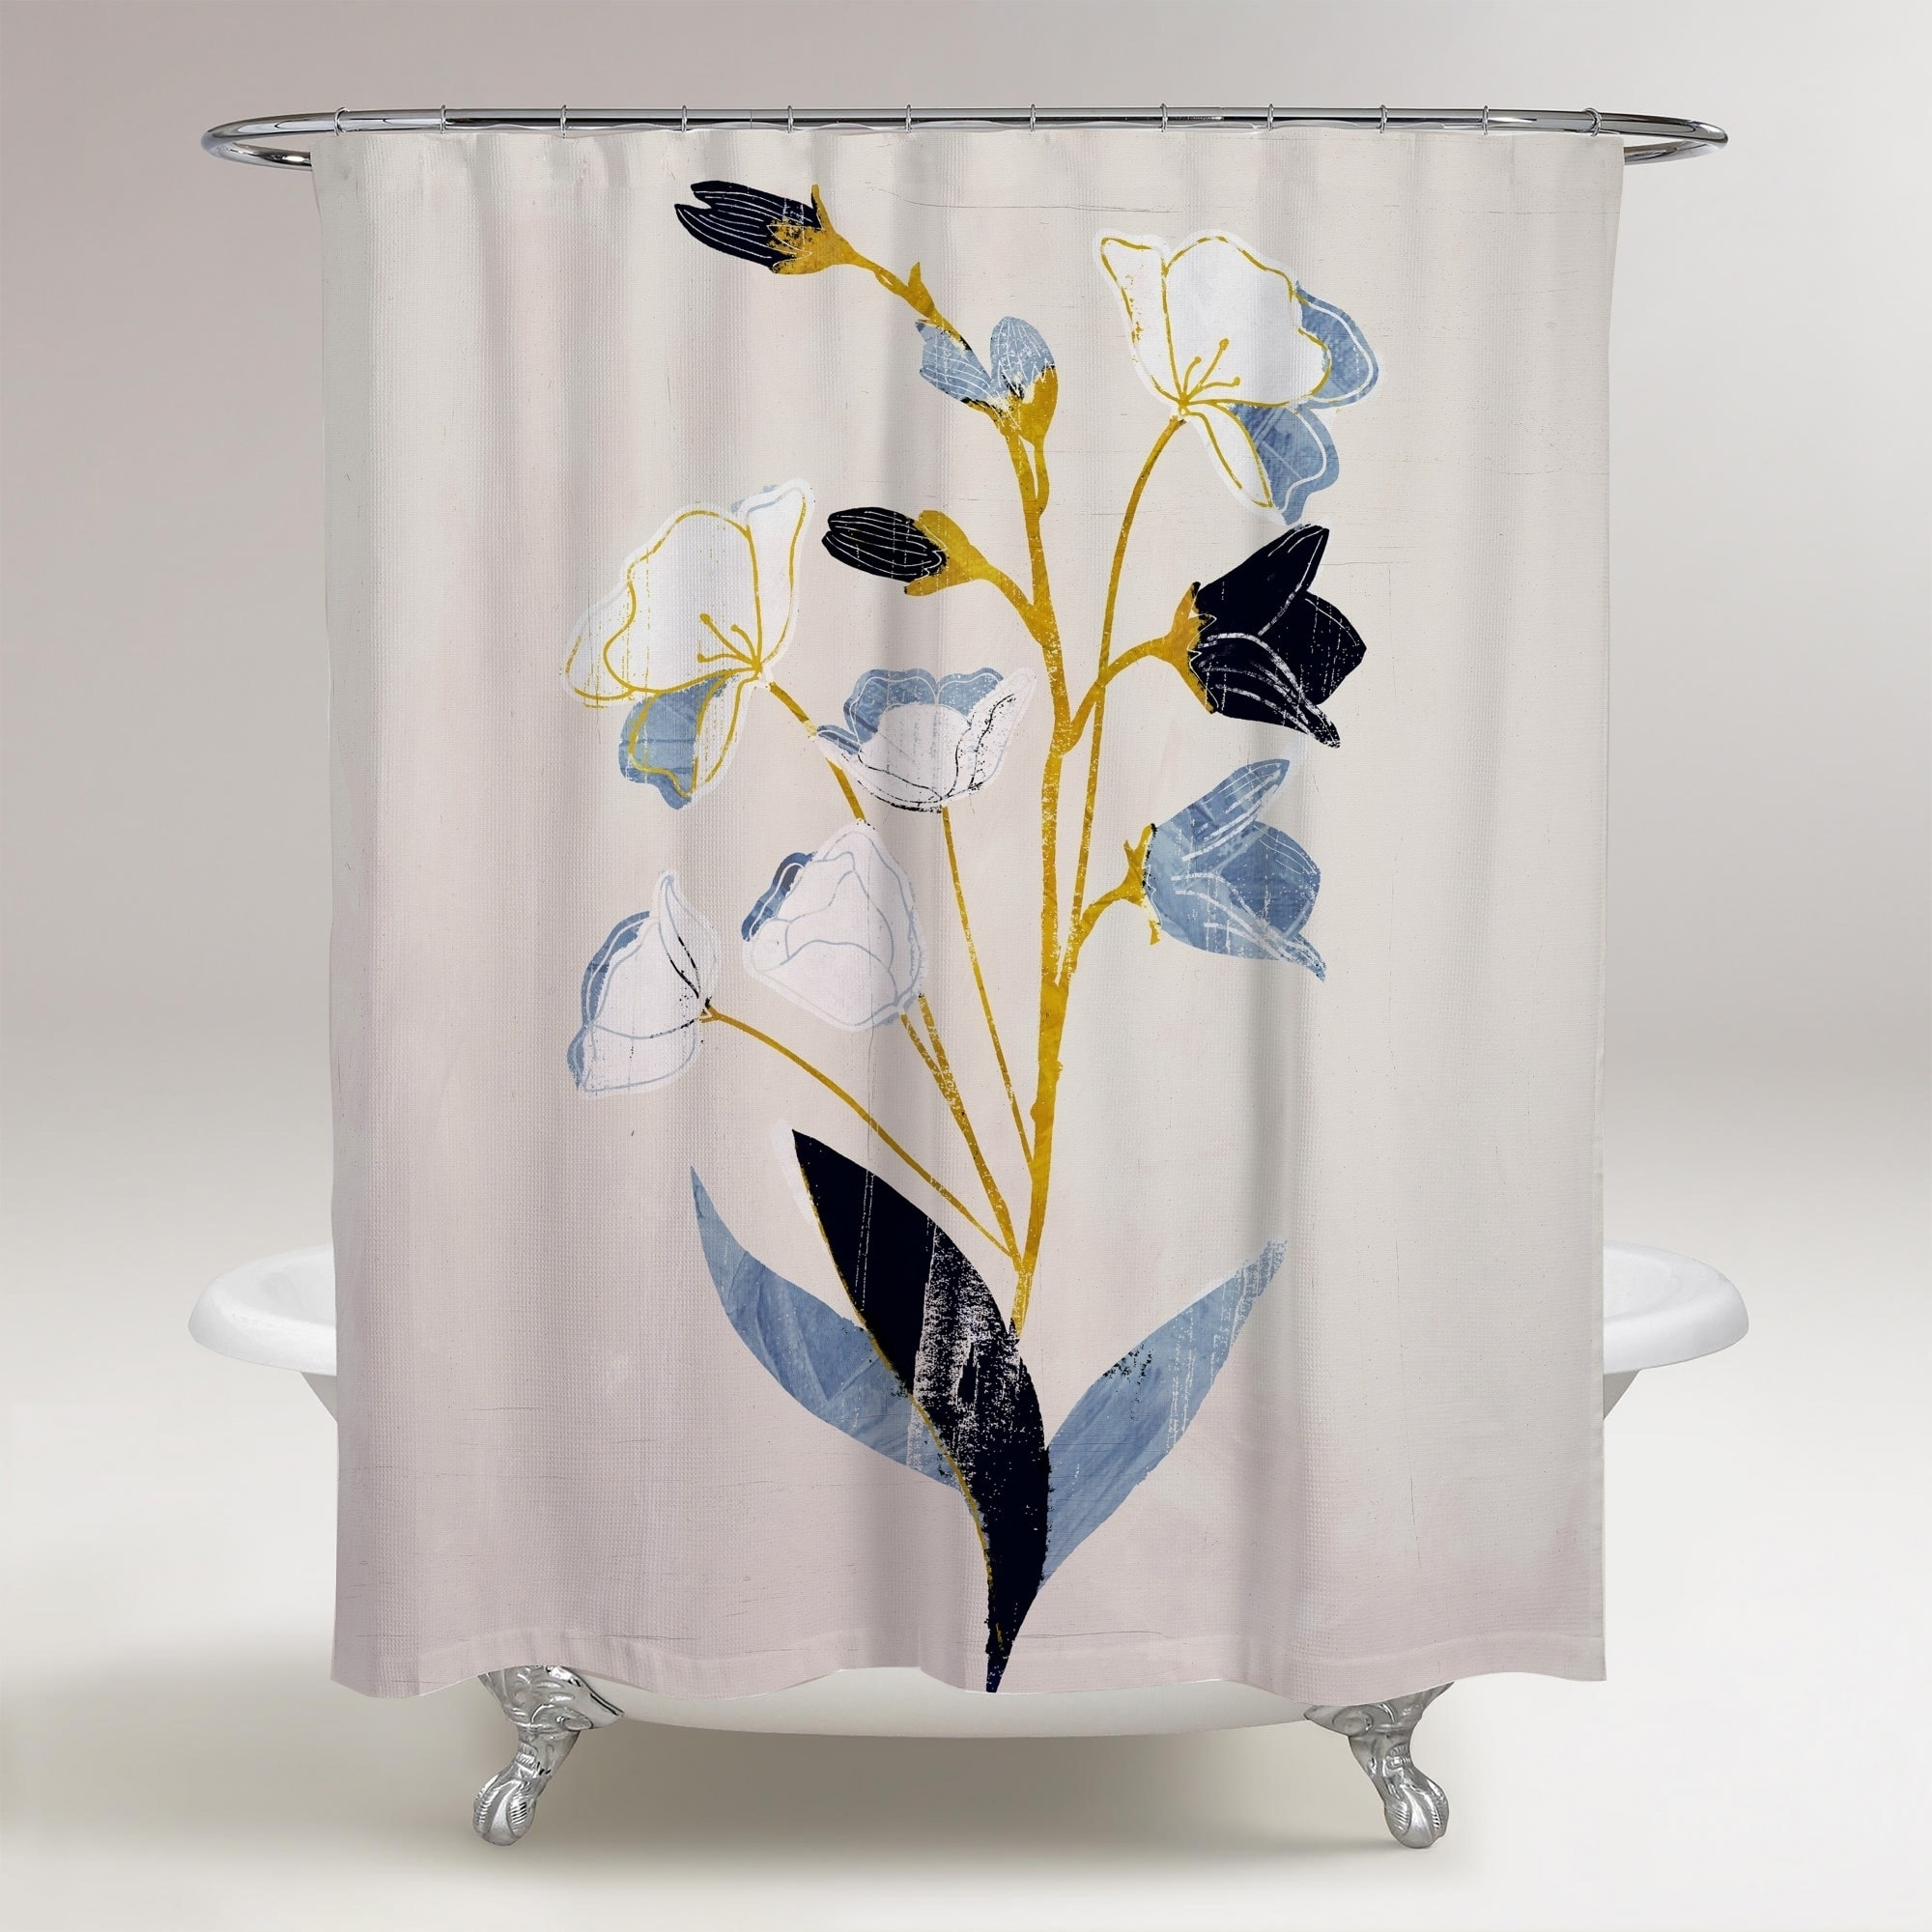 oliver gal white flowers with ochre floral and botanical decorative shower curtain florals blue gold